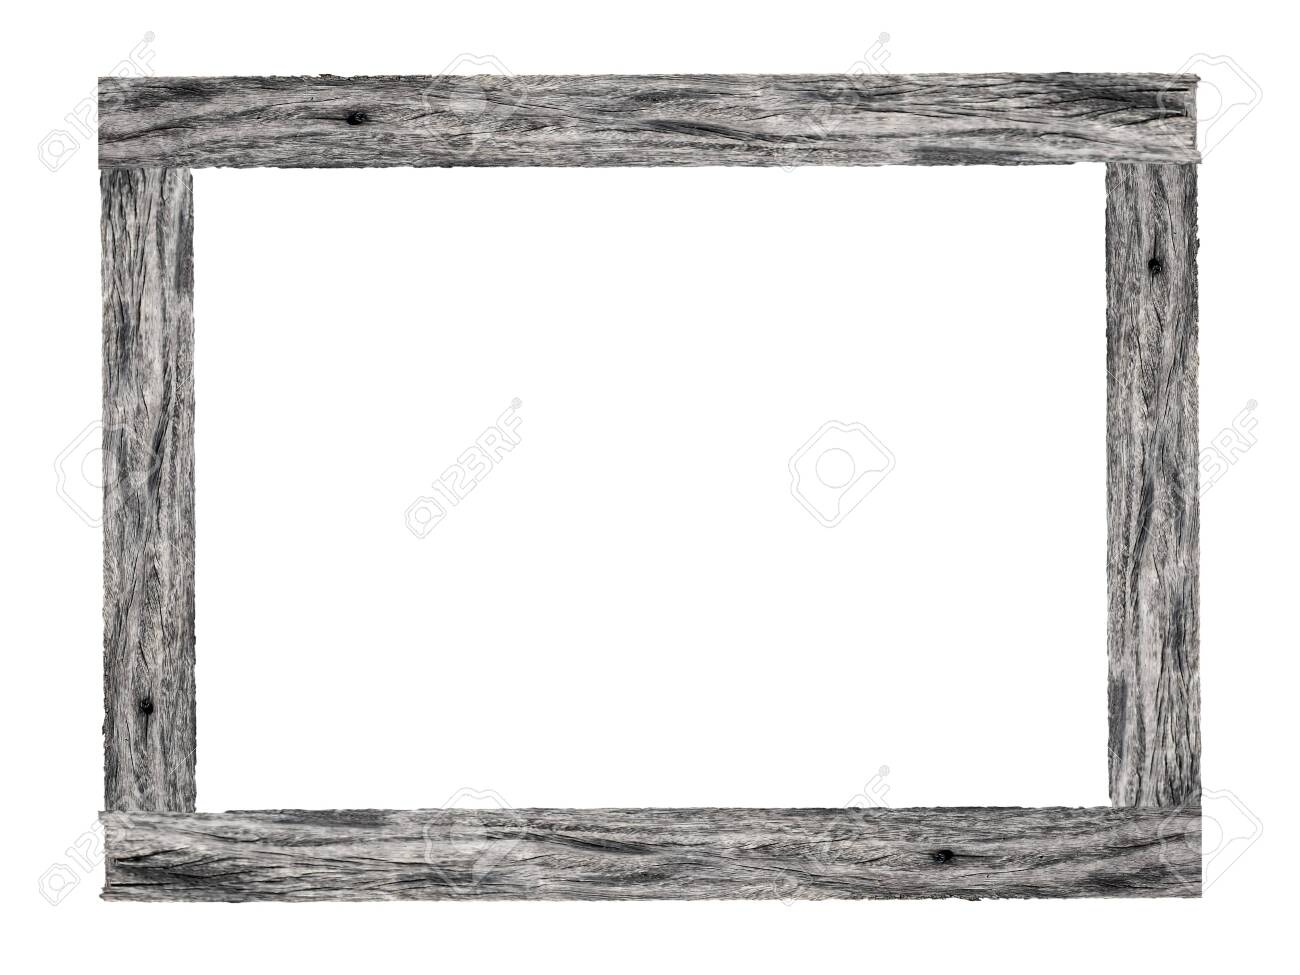 Wooden picture frame isolated on white background. - 147647432